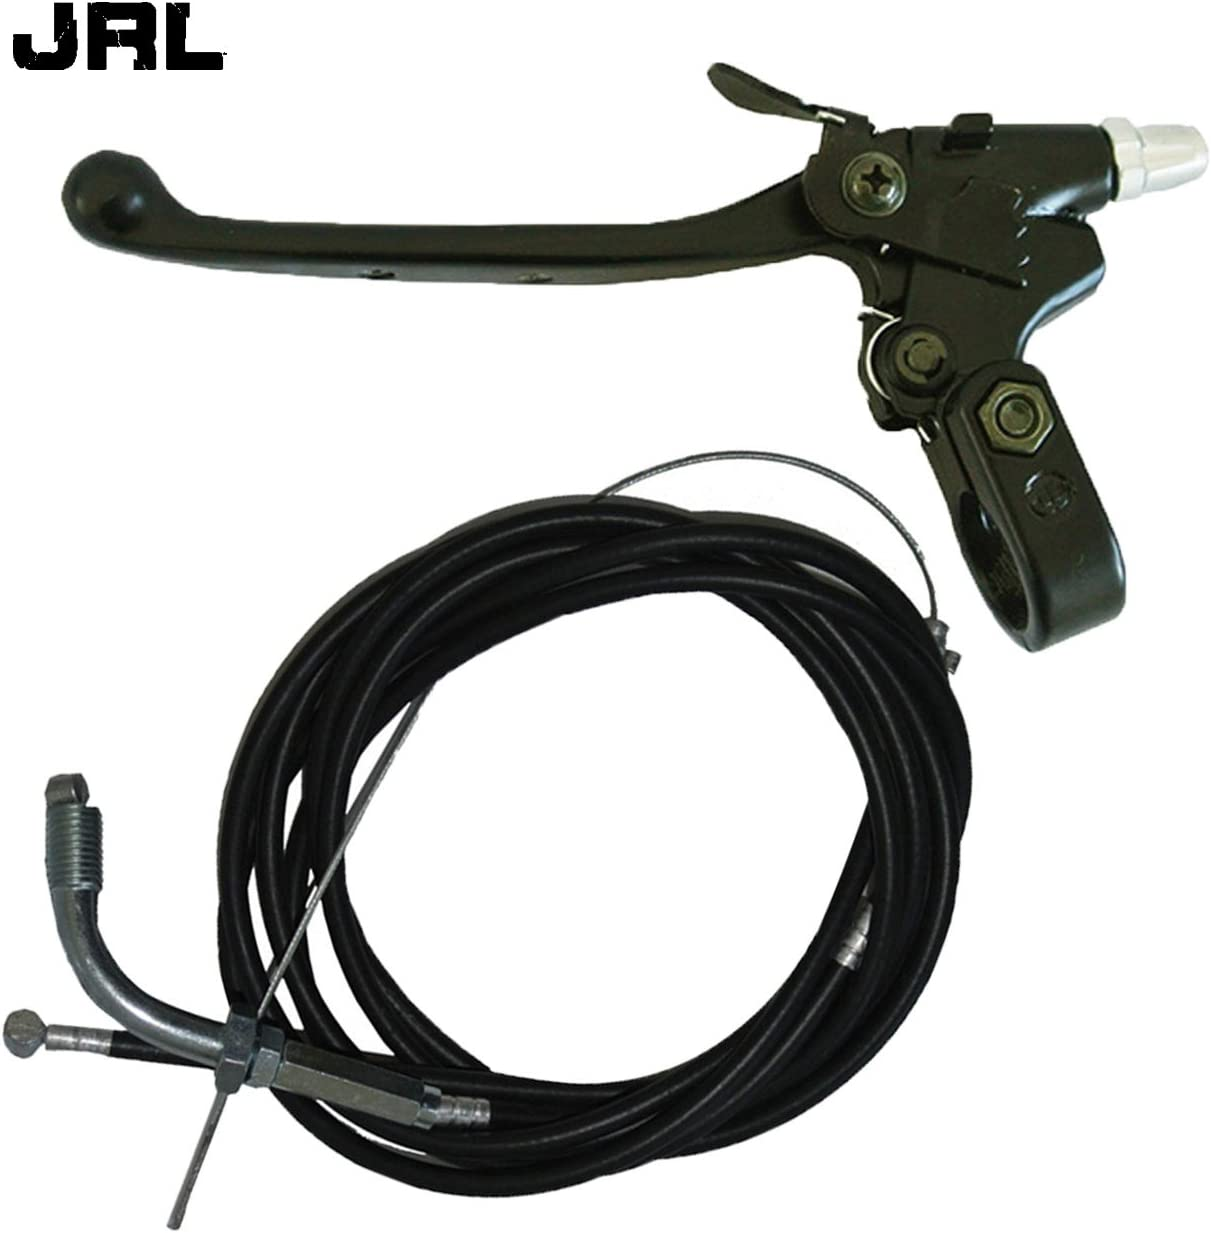 JRL 49cc To 80cc Engine Motorized Bicycle Bike Throttle Cable Clutch Cable